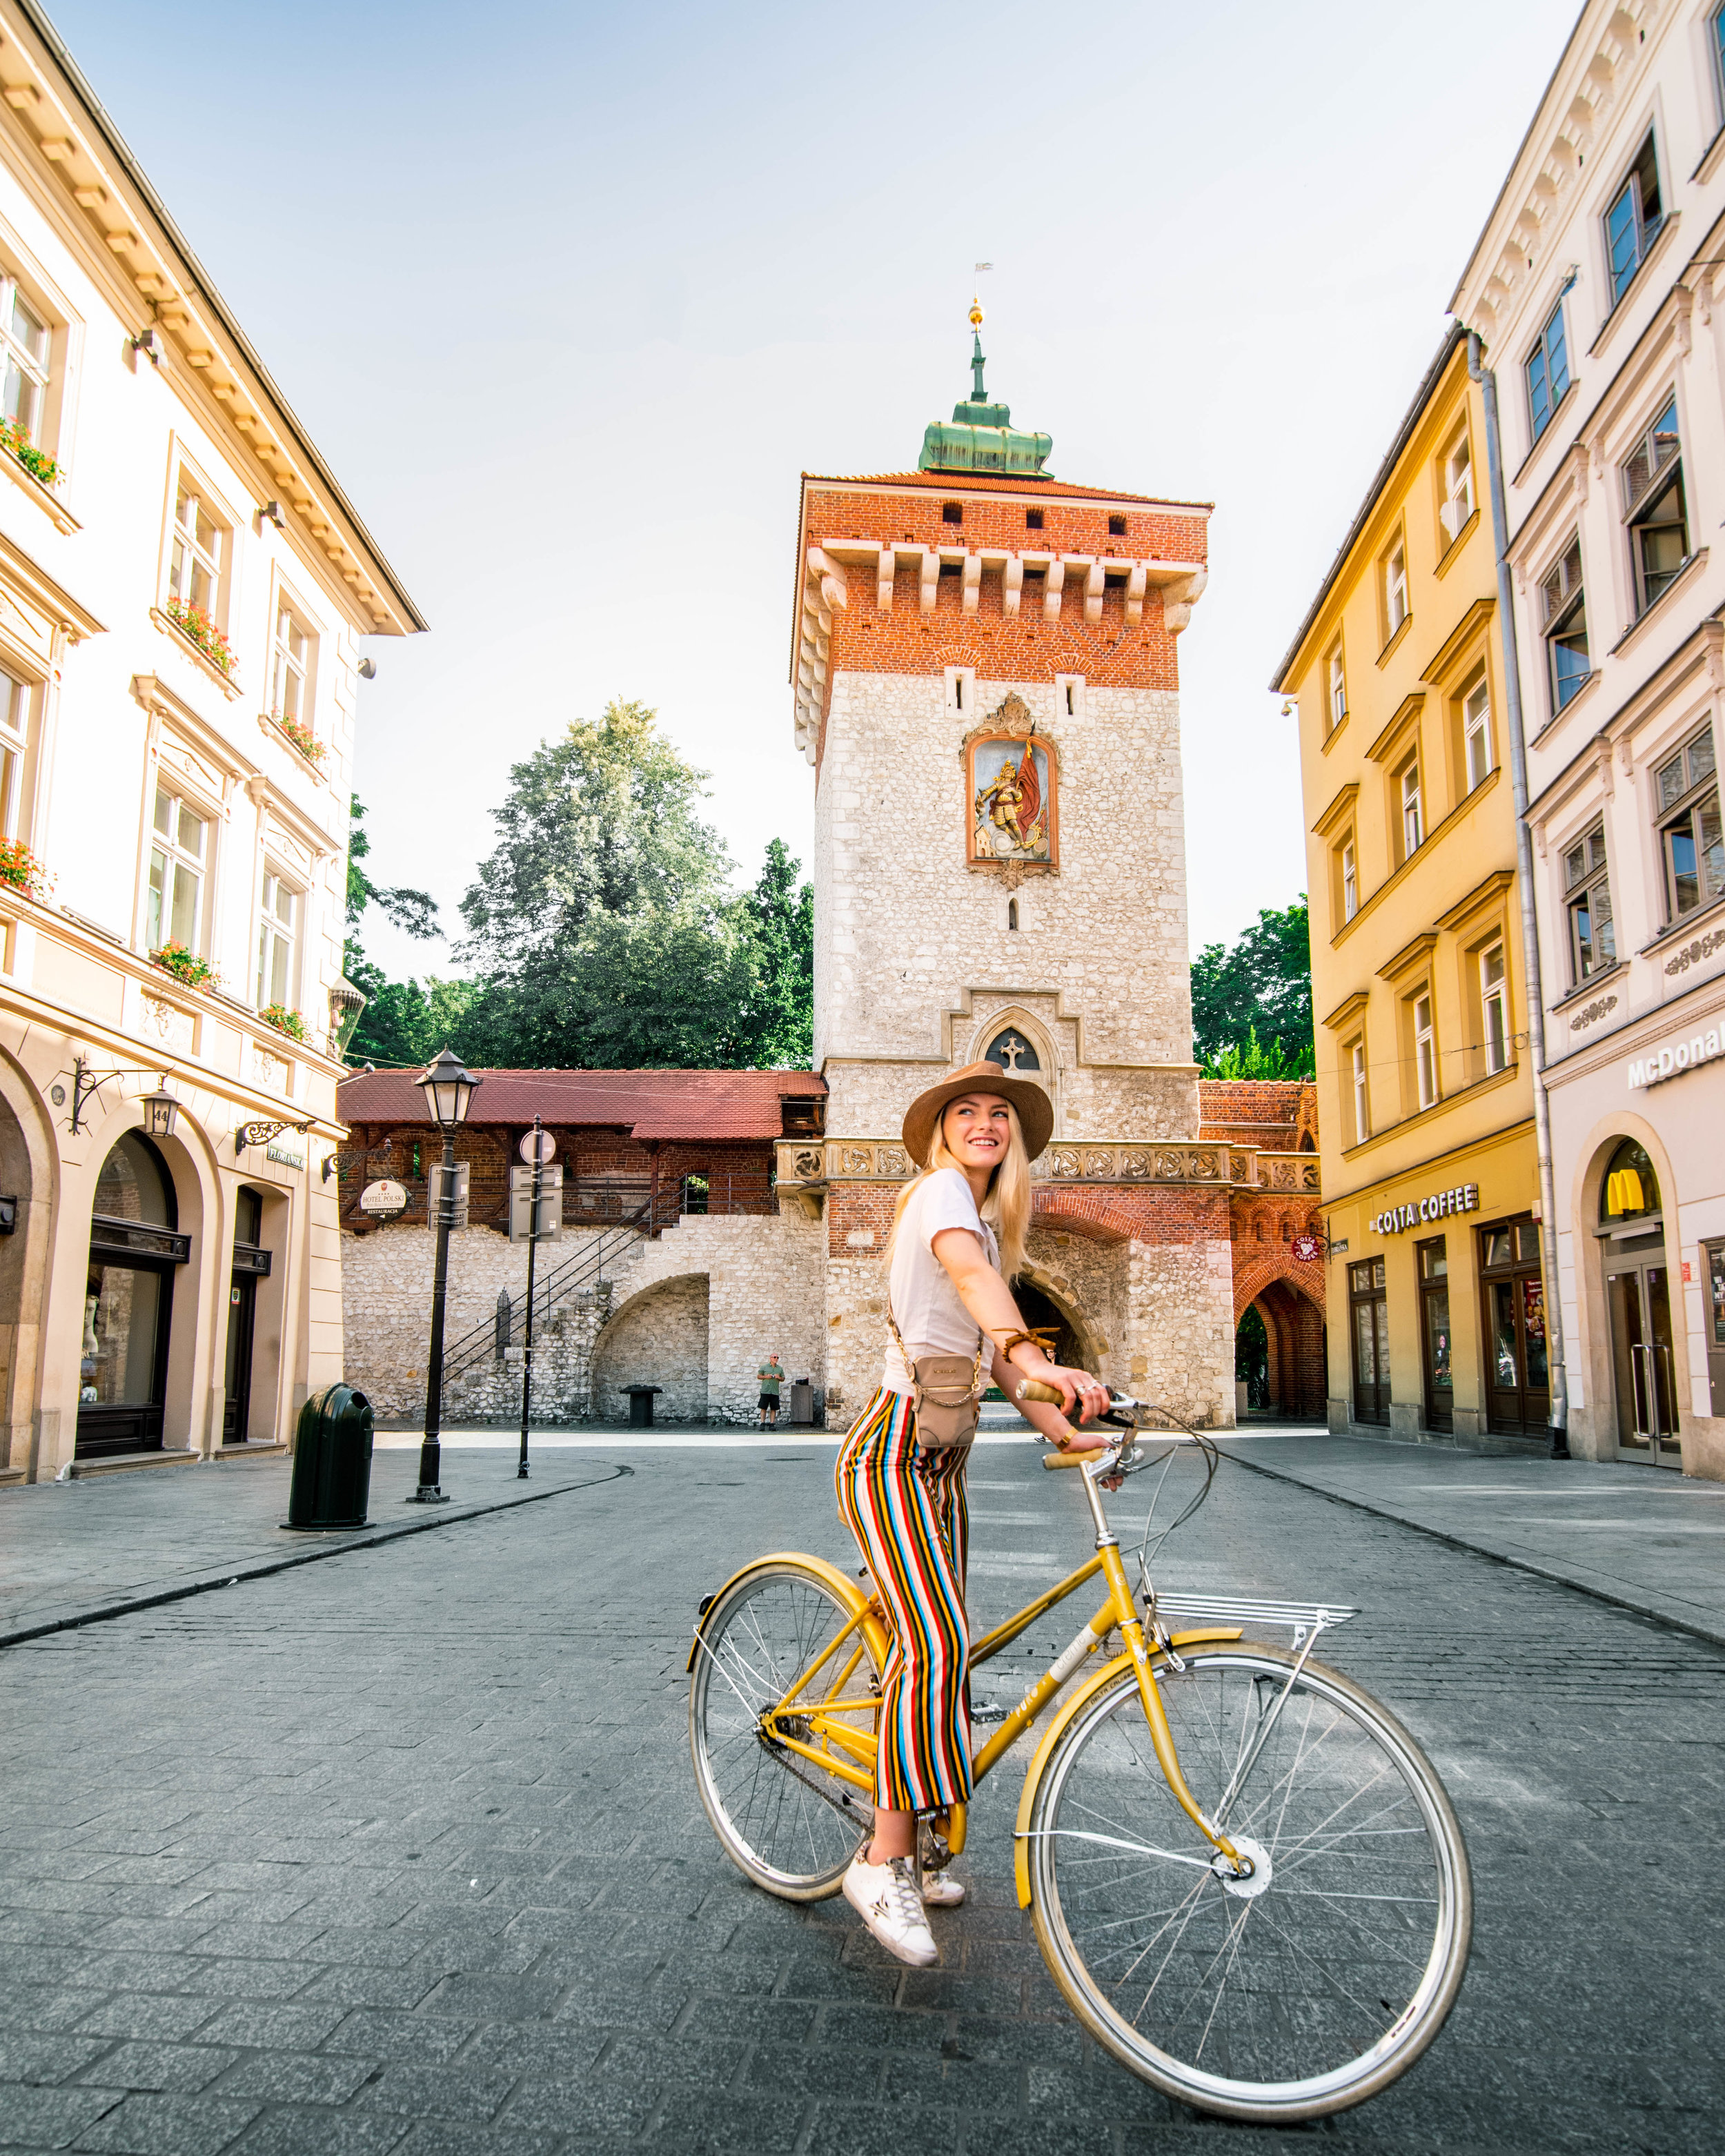 There are so many beautiful squares and parks so walking or biking around is the perfect way to explore! Make sure you grab a traditional Polish doughnut or a ponczek to fuel you ;)